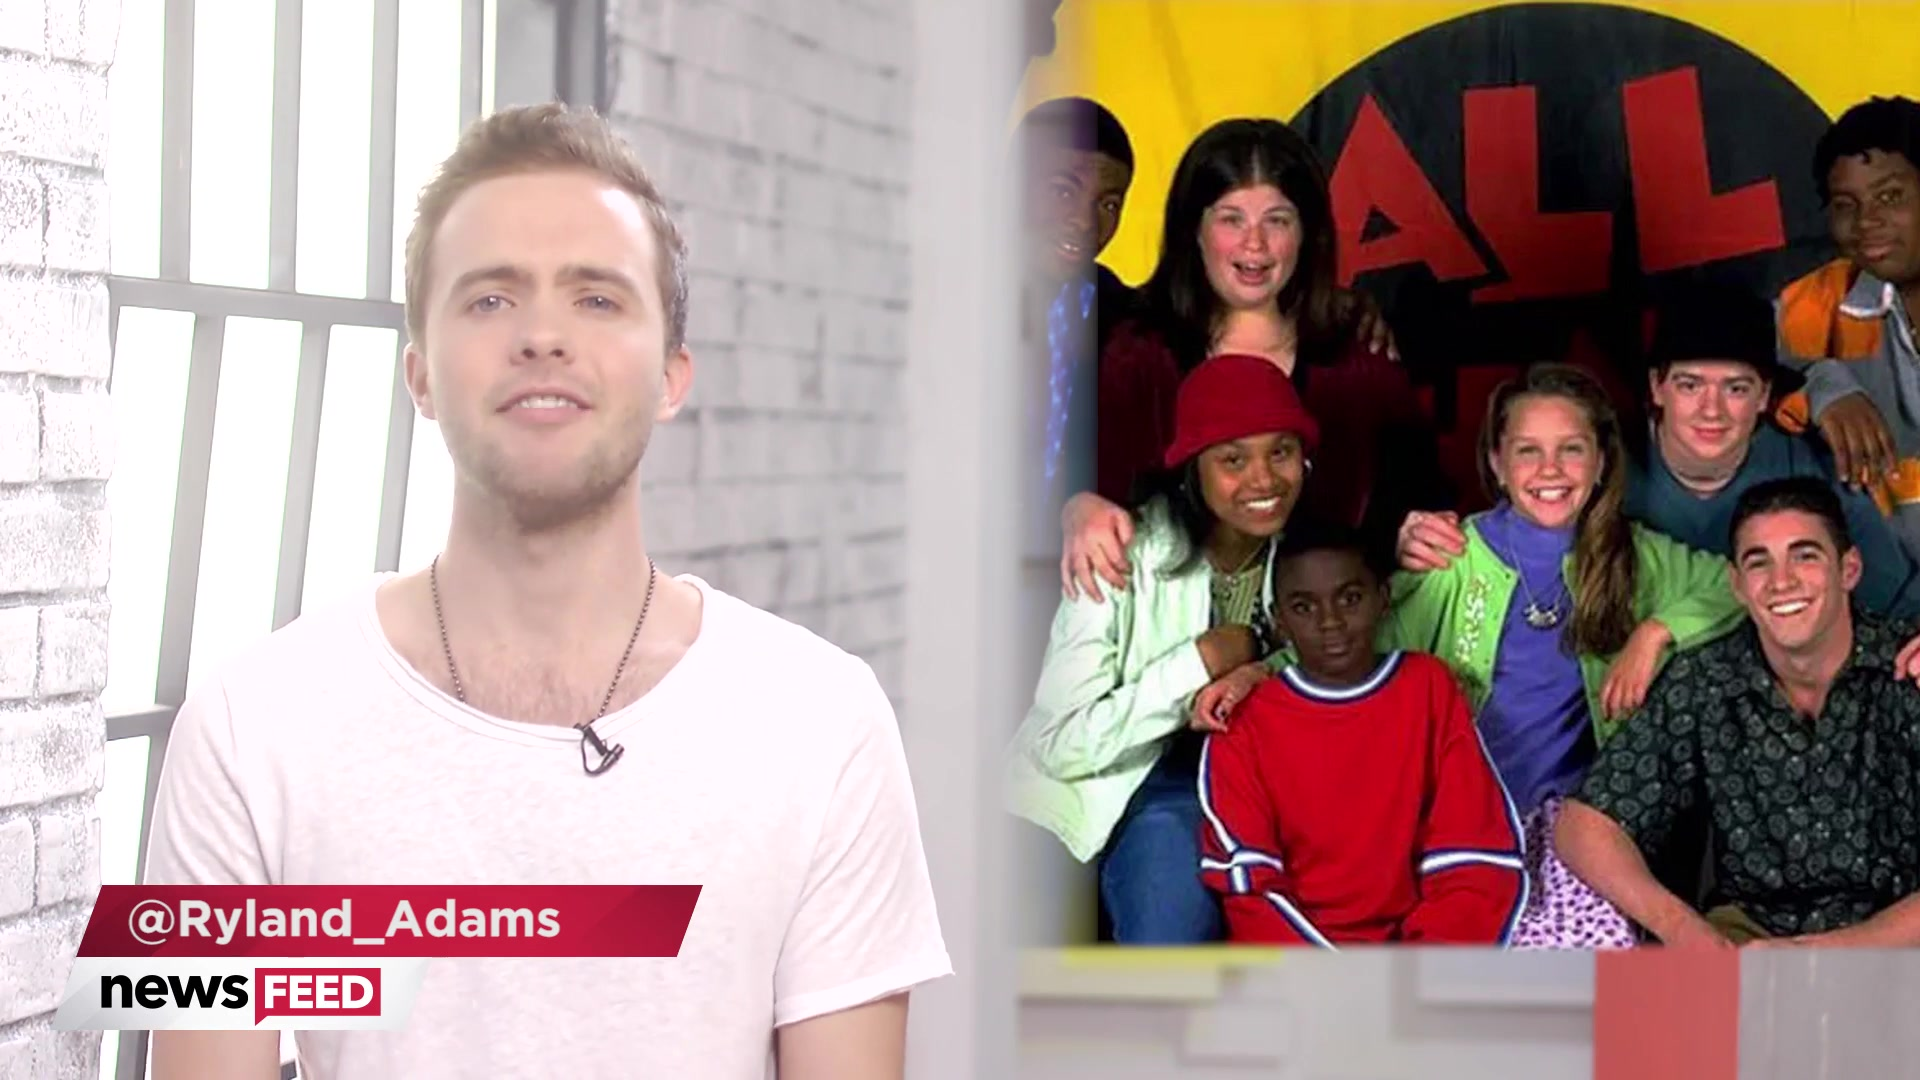 Cast of Nickelodeon's All That Reunites & Makes #TBT Dreams Come True